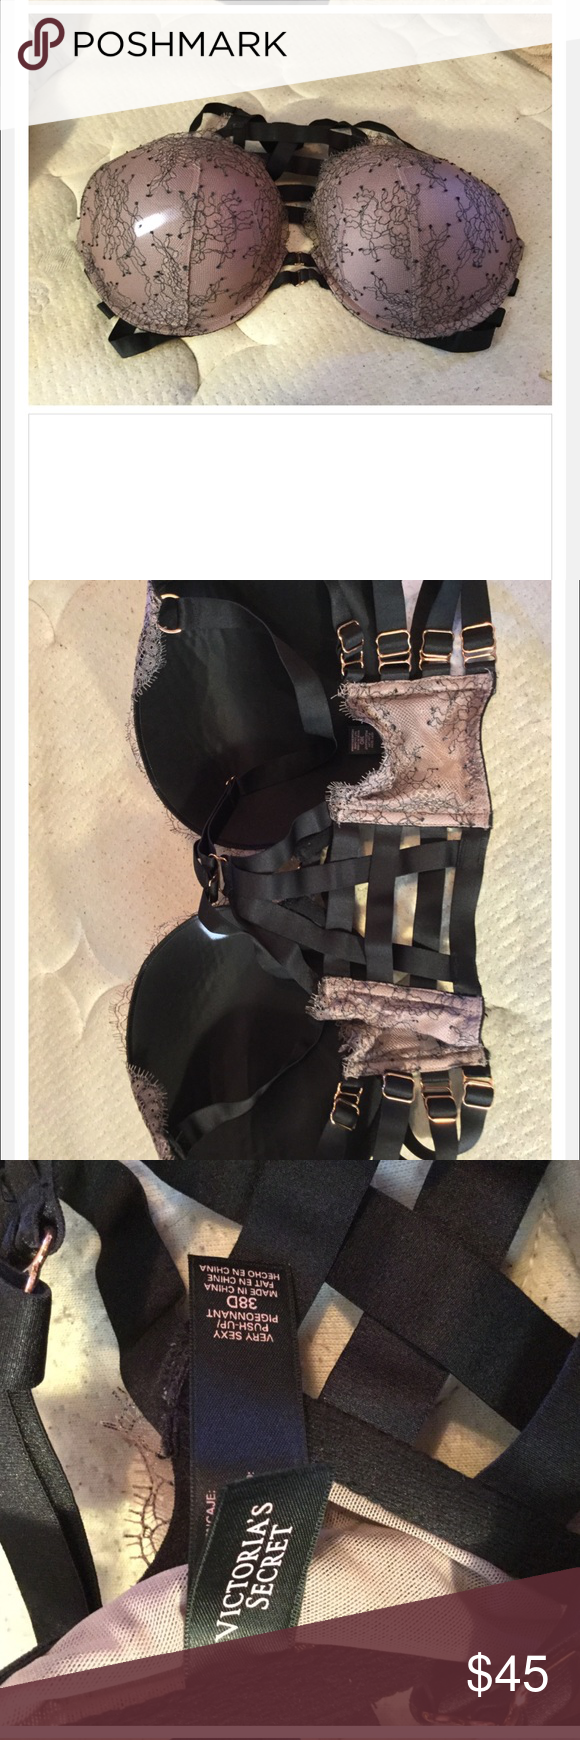 Vs caged bra This gorgeous Victoria bra is size 38D. It doesn't fit me. But it's super beautiful! Perfect for going out clubbing or date night. 💕 make an offer 🌺 Victoria's Secret Intimates & Sleepwear Bras